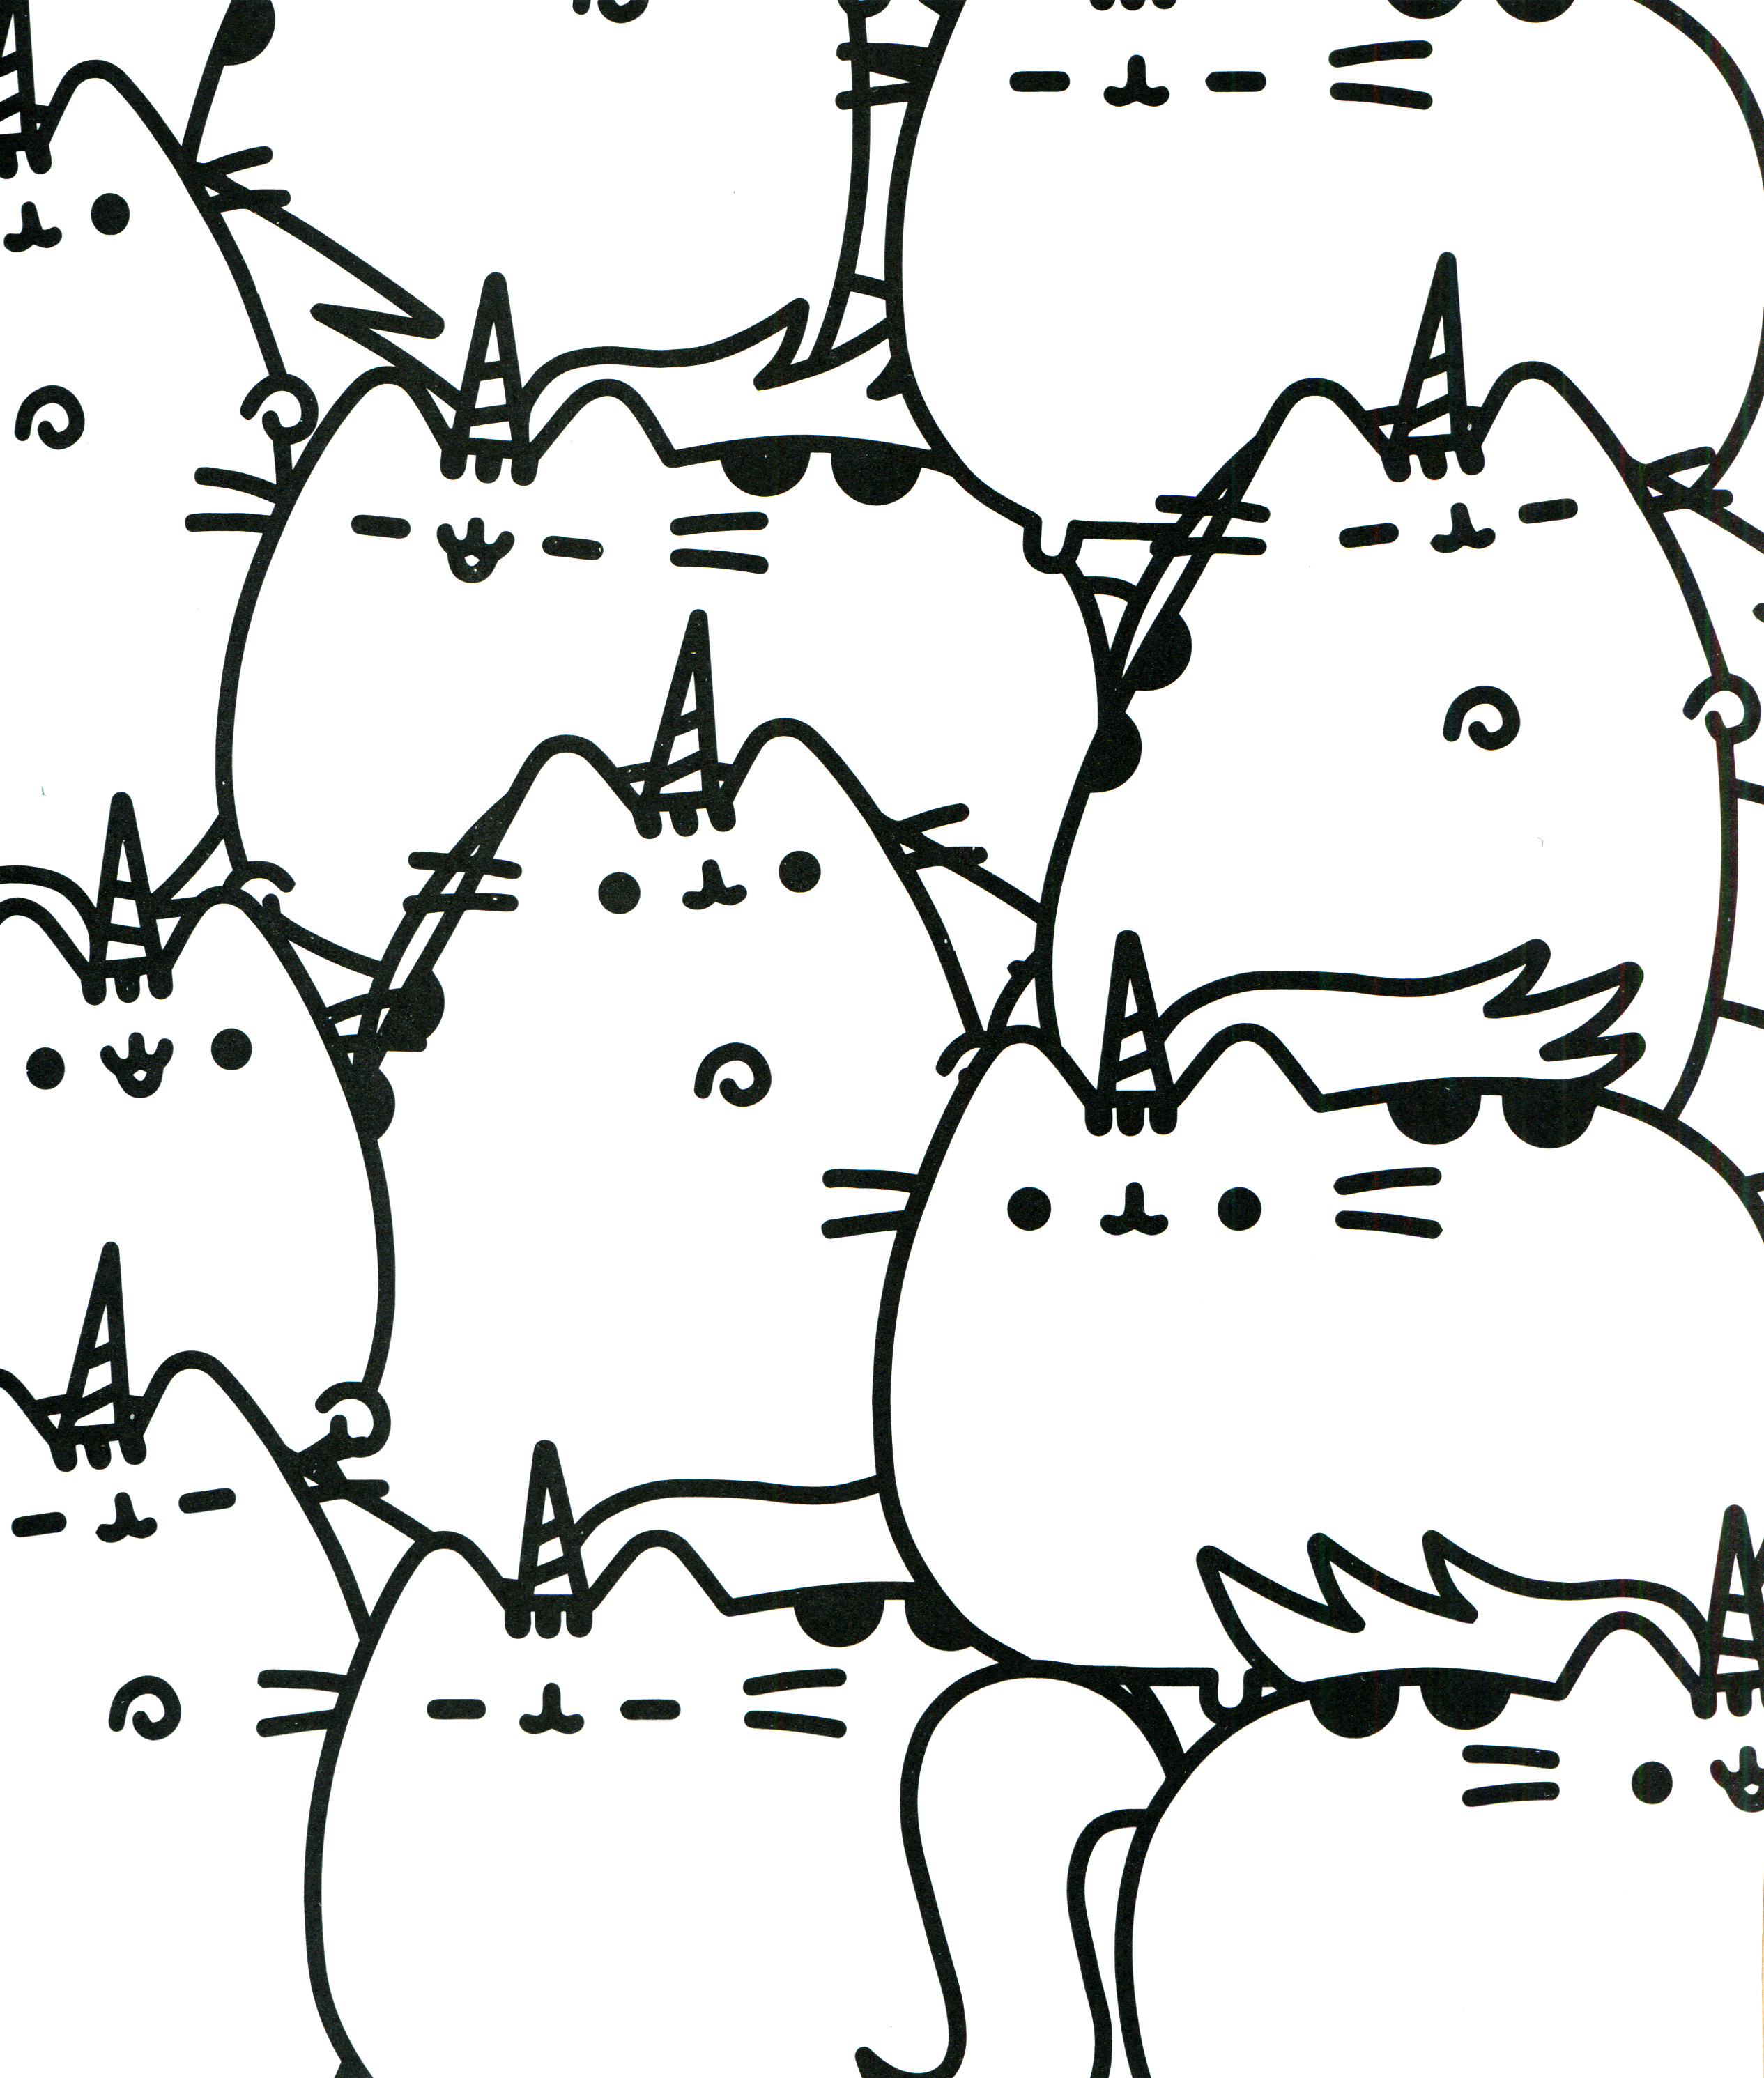 Unicorn Pusheen Cat Coloring Pages Designs Collections